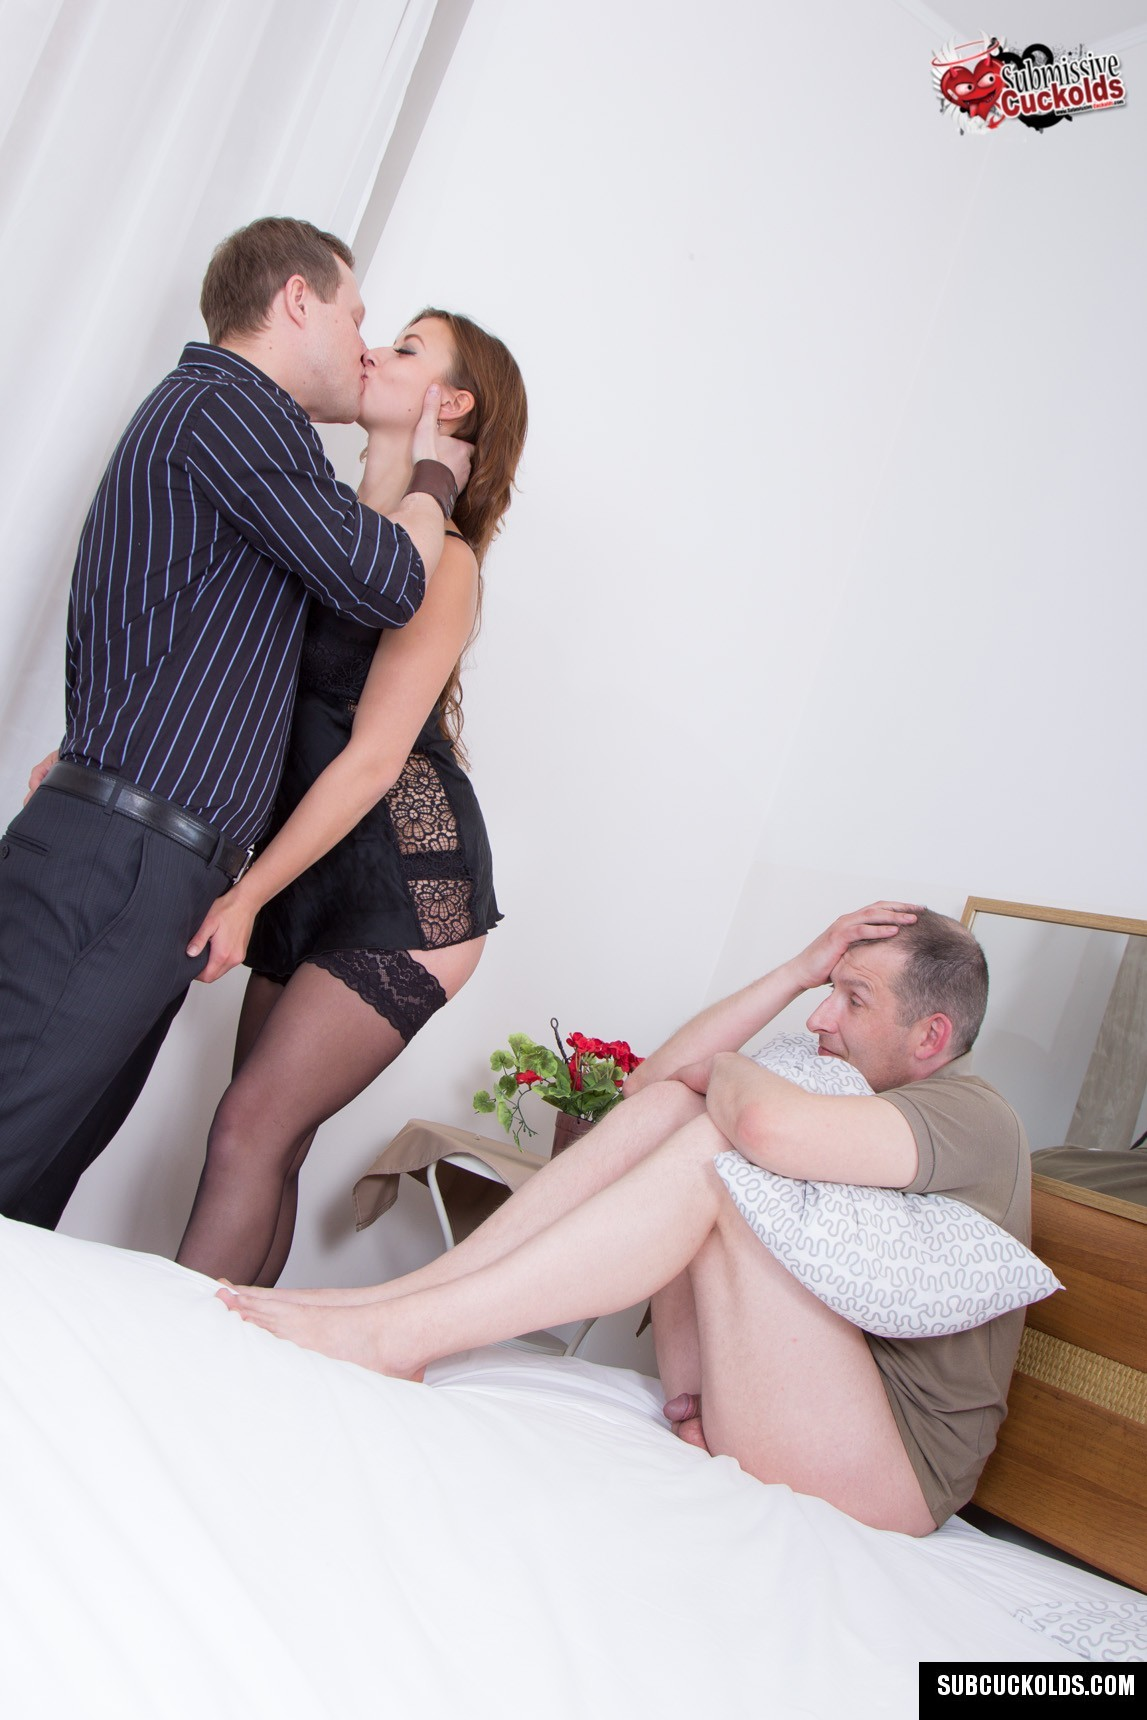 A young cuckold relationship part 1 - 3 part 2